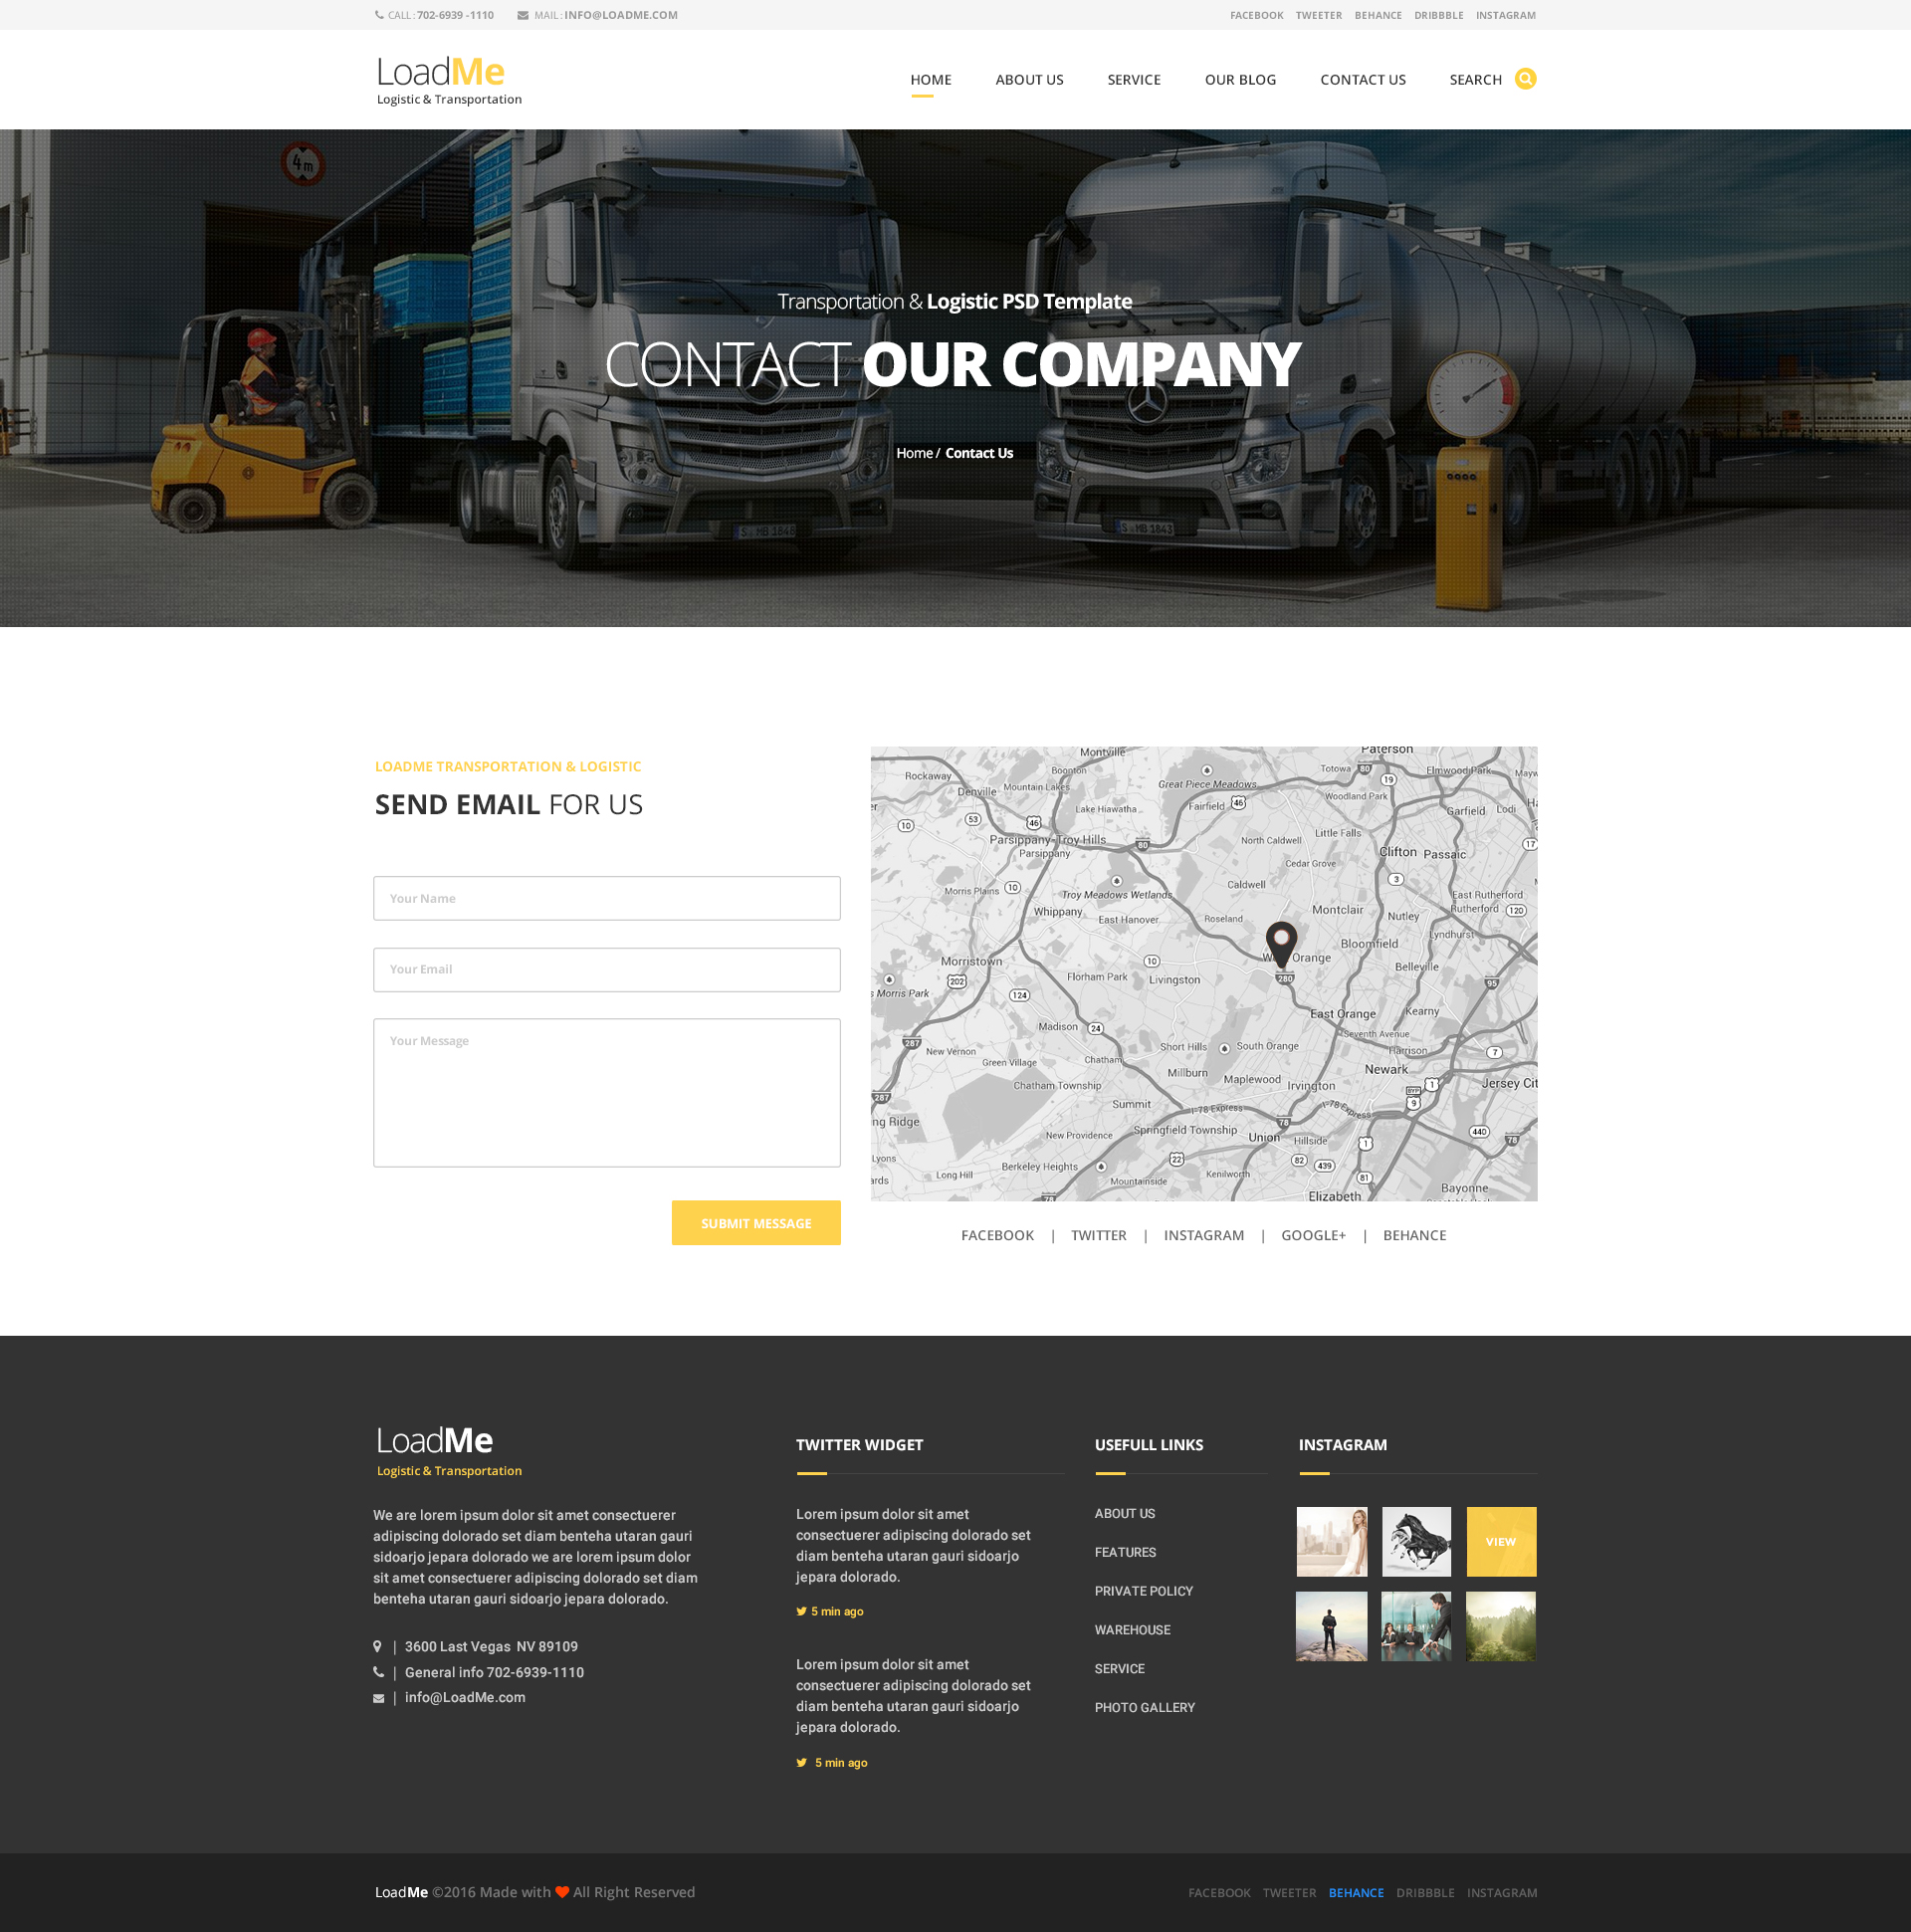 LoadMe - Logistic & Transportation PSD Template by Last40 | ThemeForest